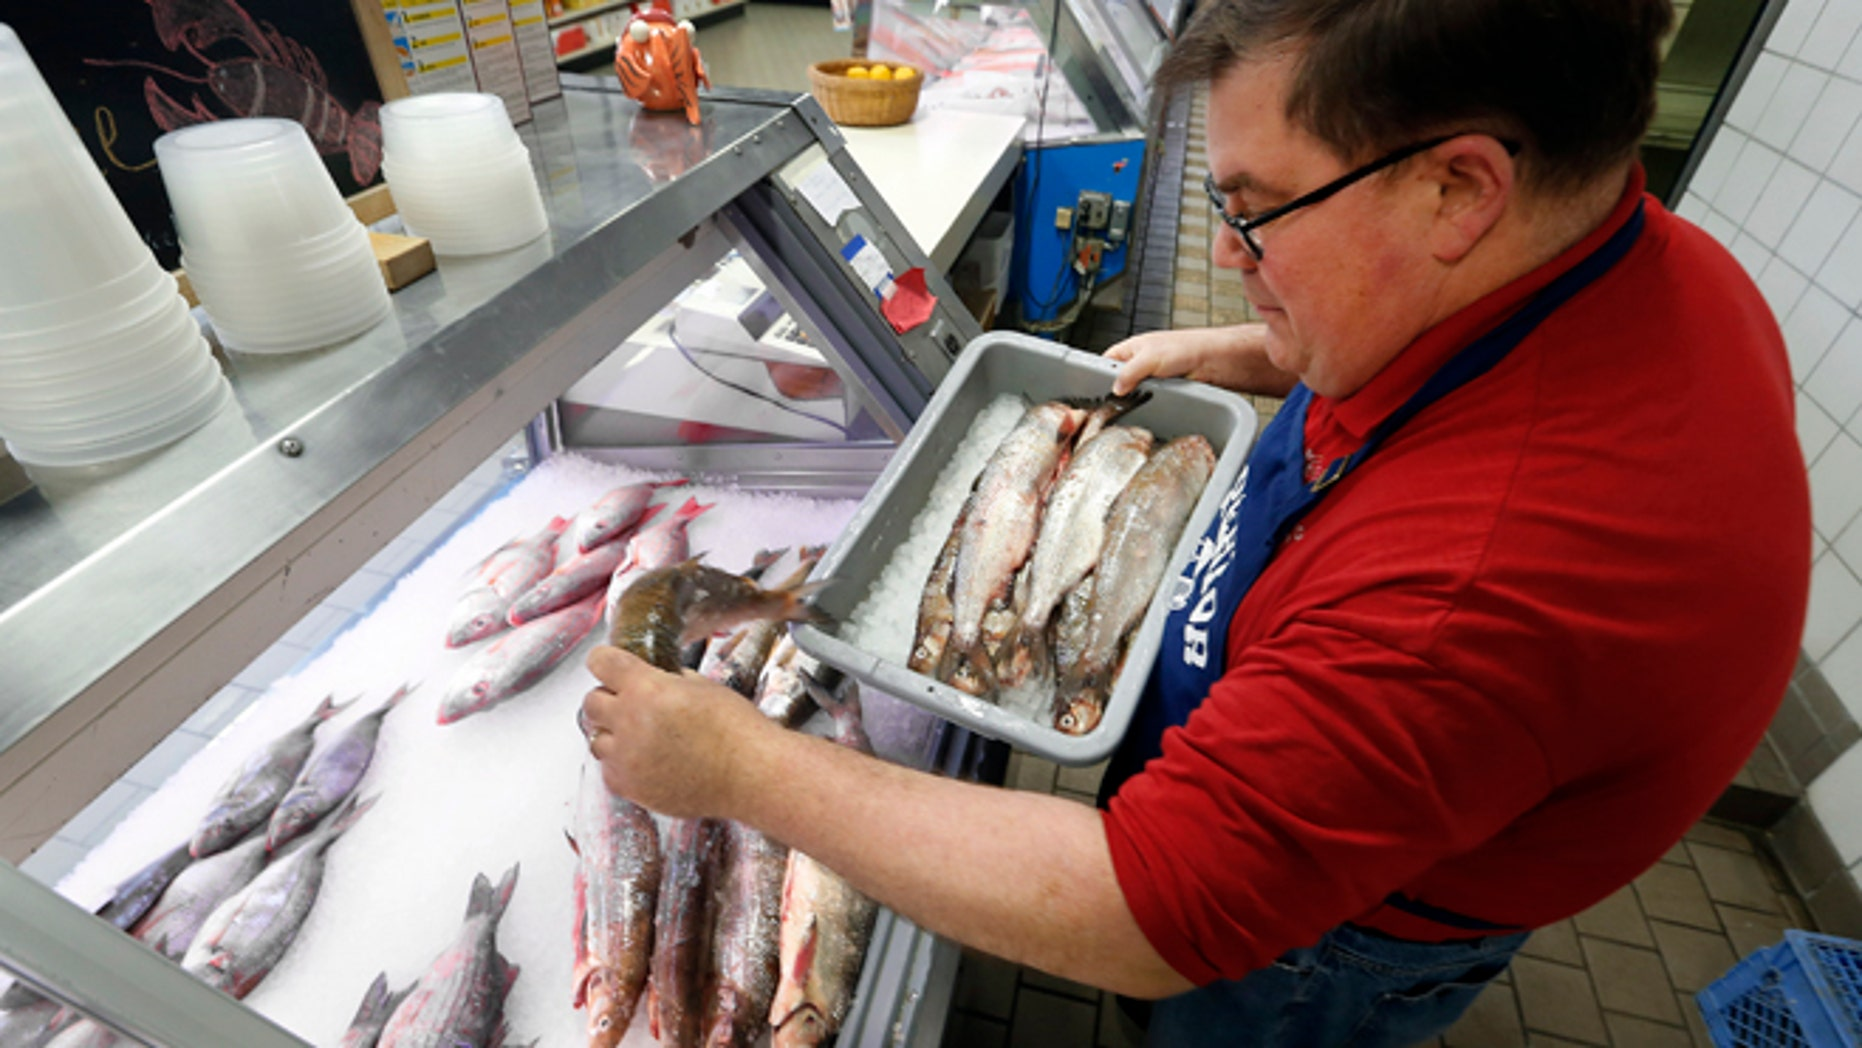 April 14, 2014: Kevin Dean, co-owner of Superior Fish Company, puts Whitefish out for sale in Royal Oak, Mich. Many fish markets in the Great Lakes region are running short of whitefish, and its coming at a bad time: Passover. The shortfall is yet another ripple effect of the bitterly cold winter that caused vast sections of the Great Lakes to freeze over. Dean said his latest shipment of Whitefish amounted to just 75 pounds although he requested 500. (AP/Paul Sancya)